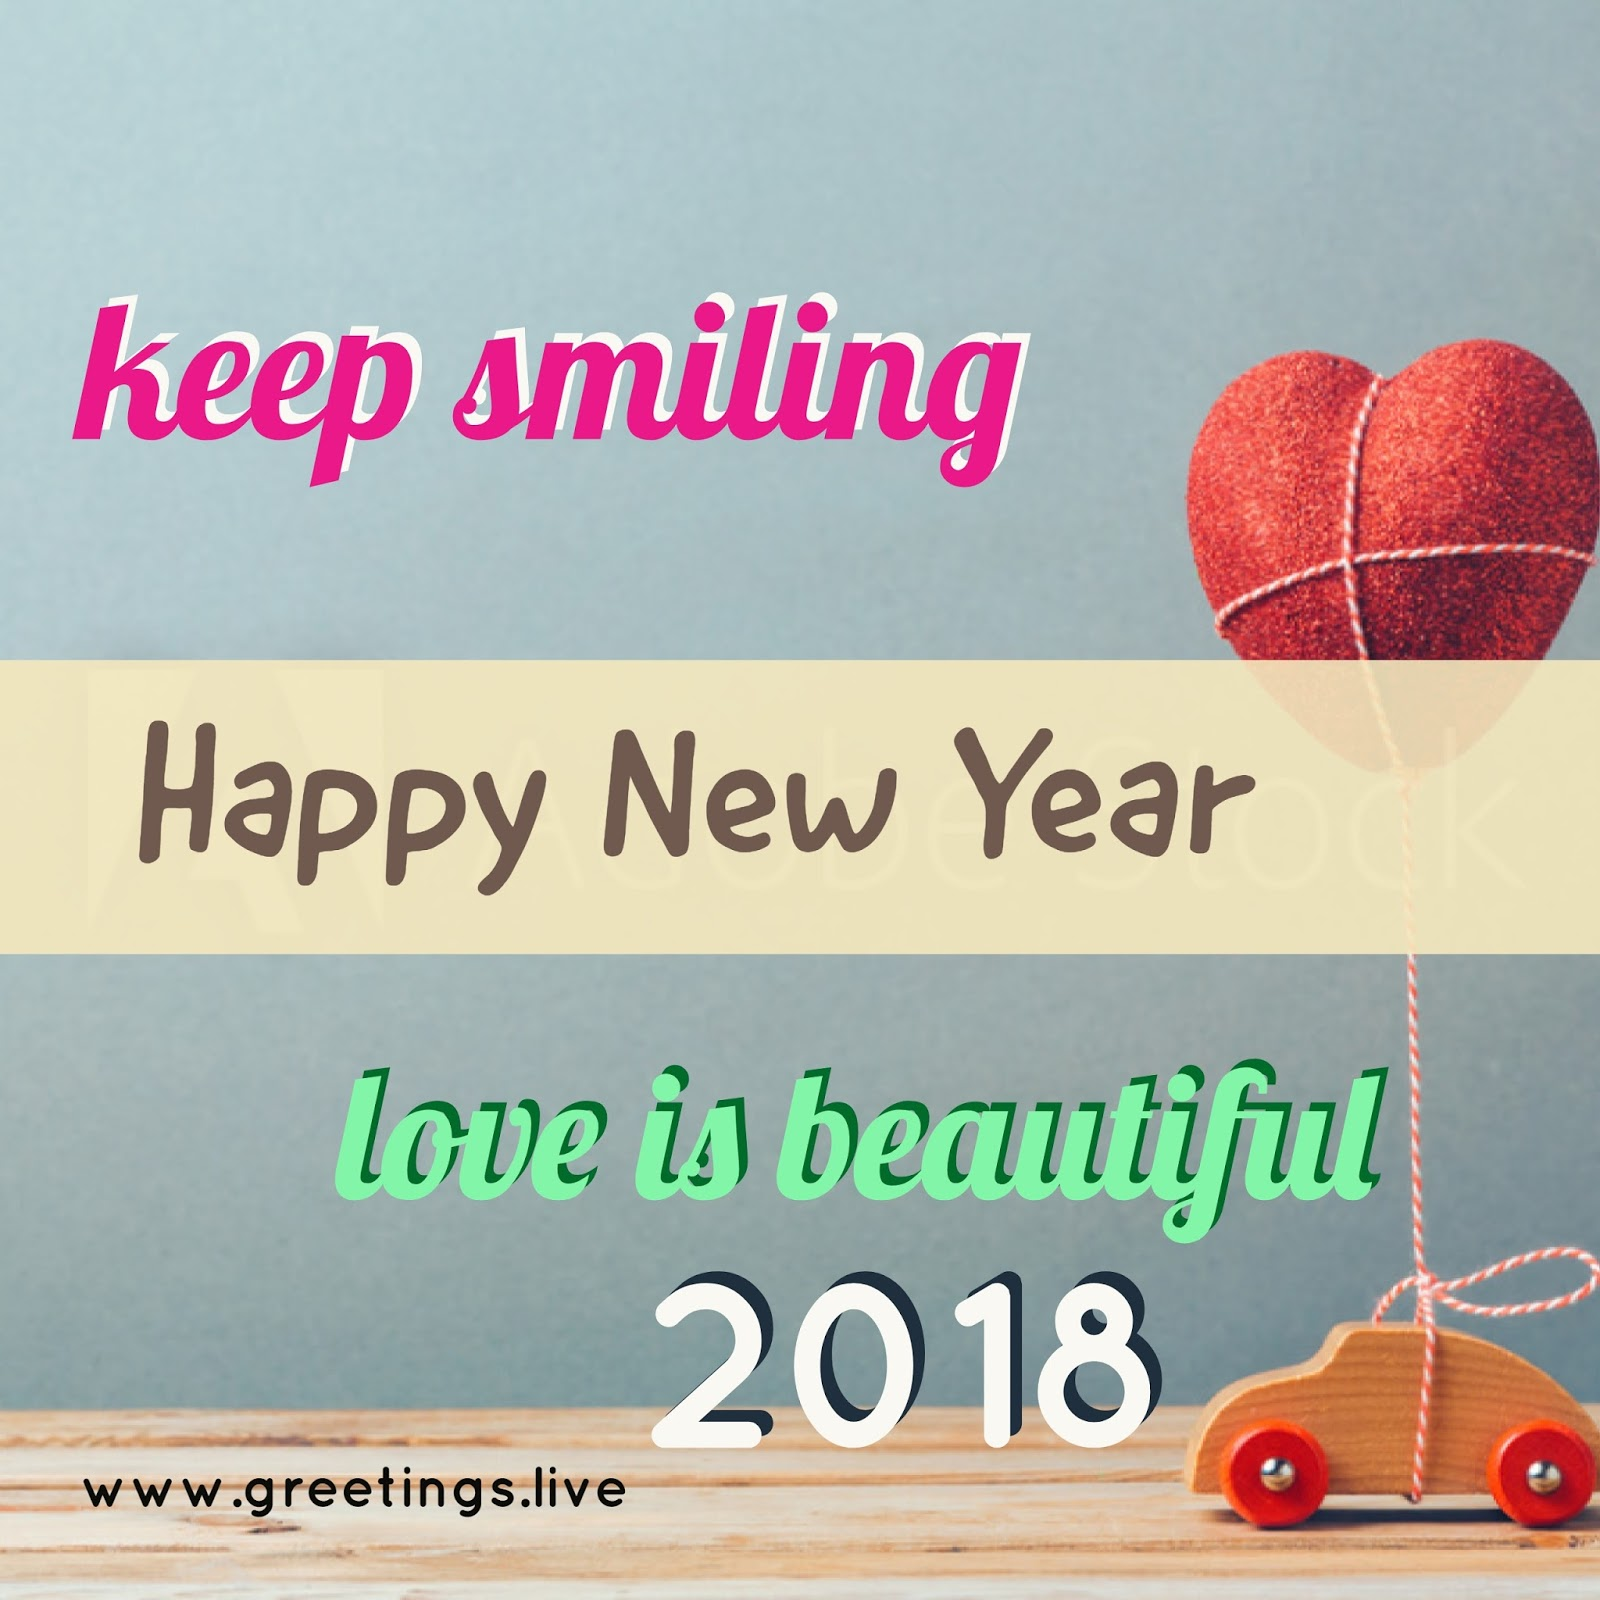 Greetingsve hd images love smile birthday wishes free download love greetings on happy new year 2018 kristyandbryce Image collections